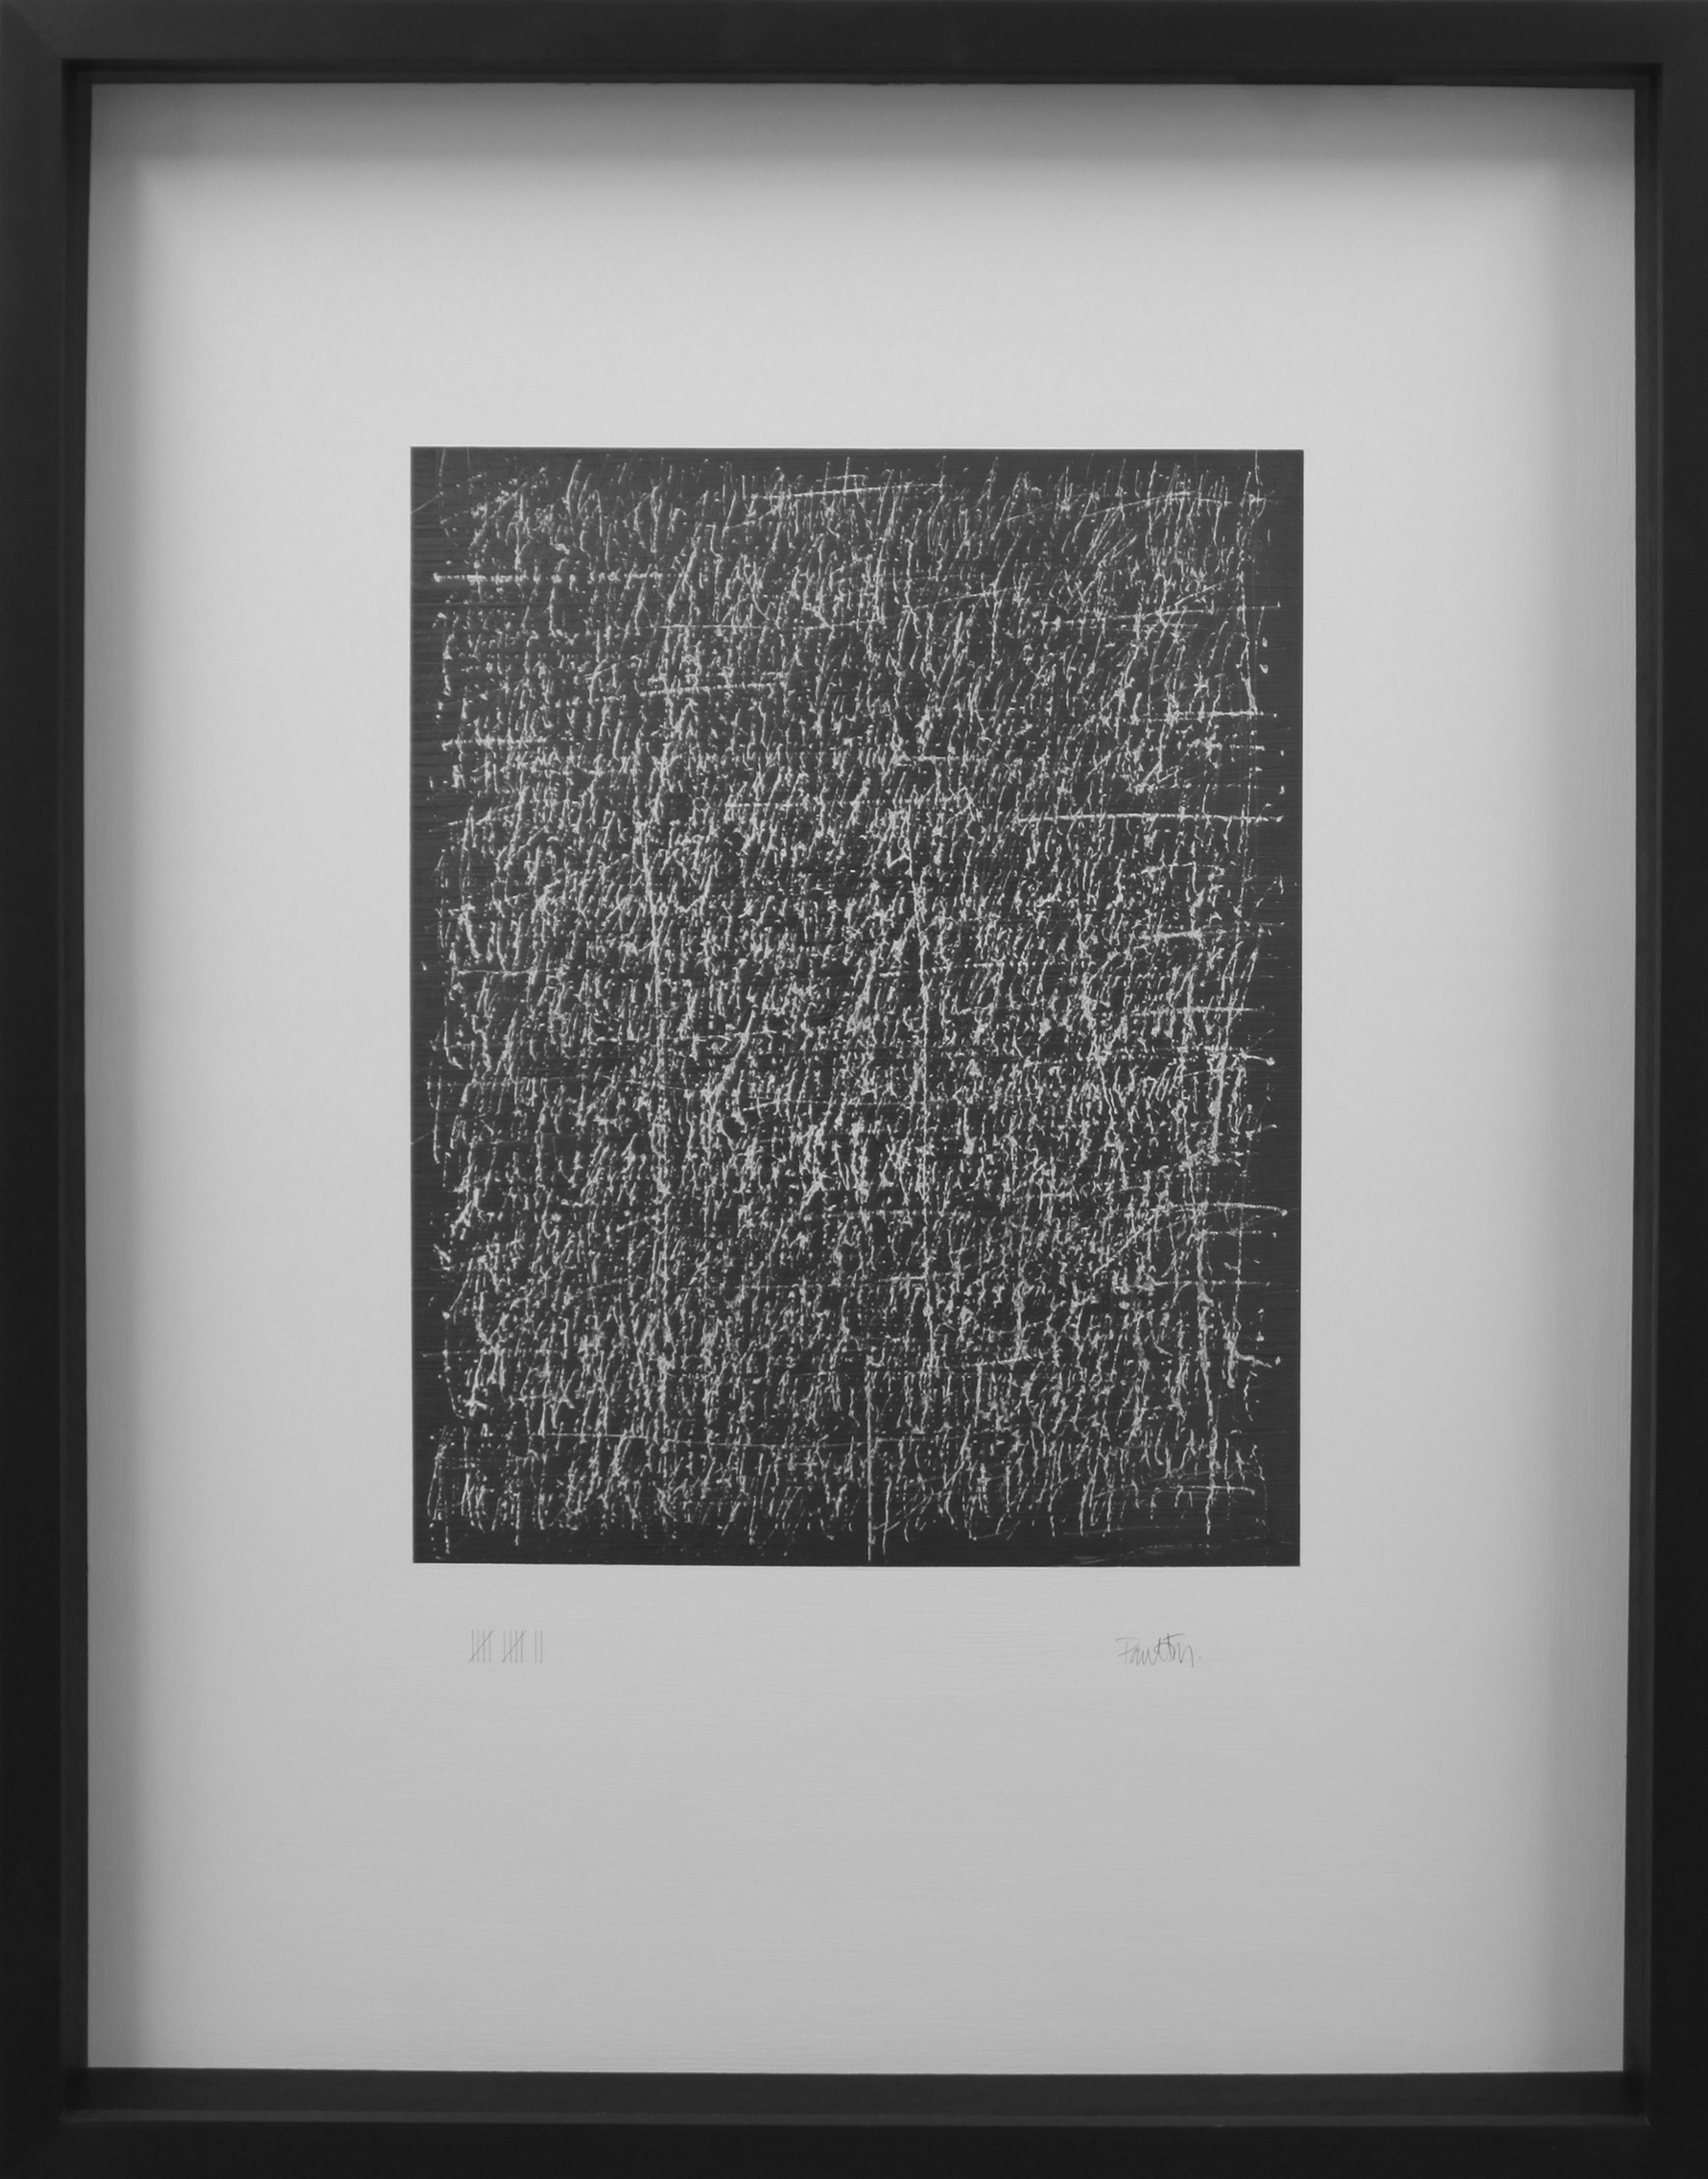 12 - the edge of silence 60.5 x 7 x 77cm graphite on canvas/wood